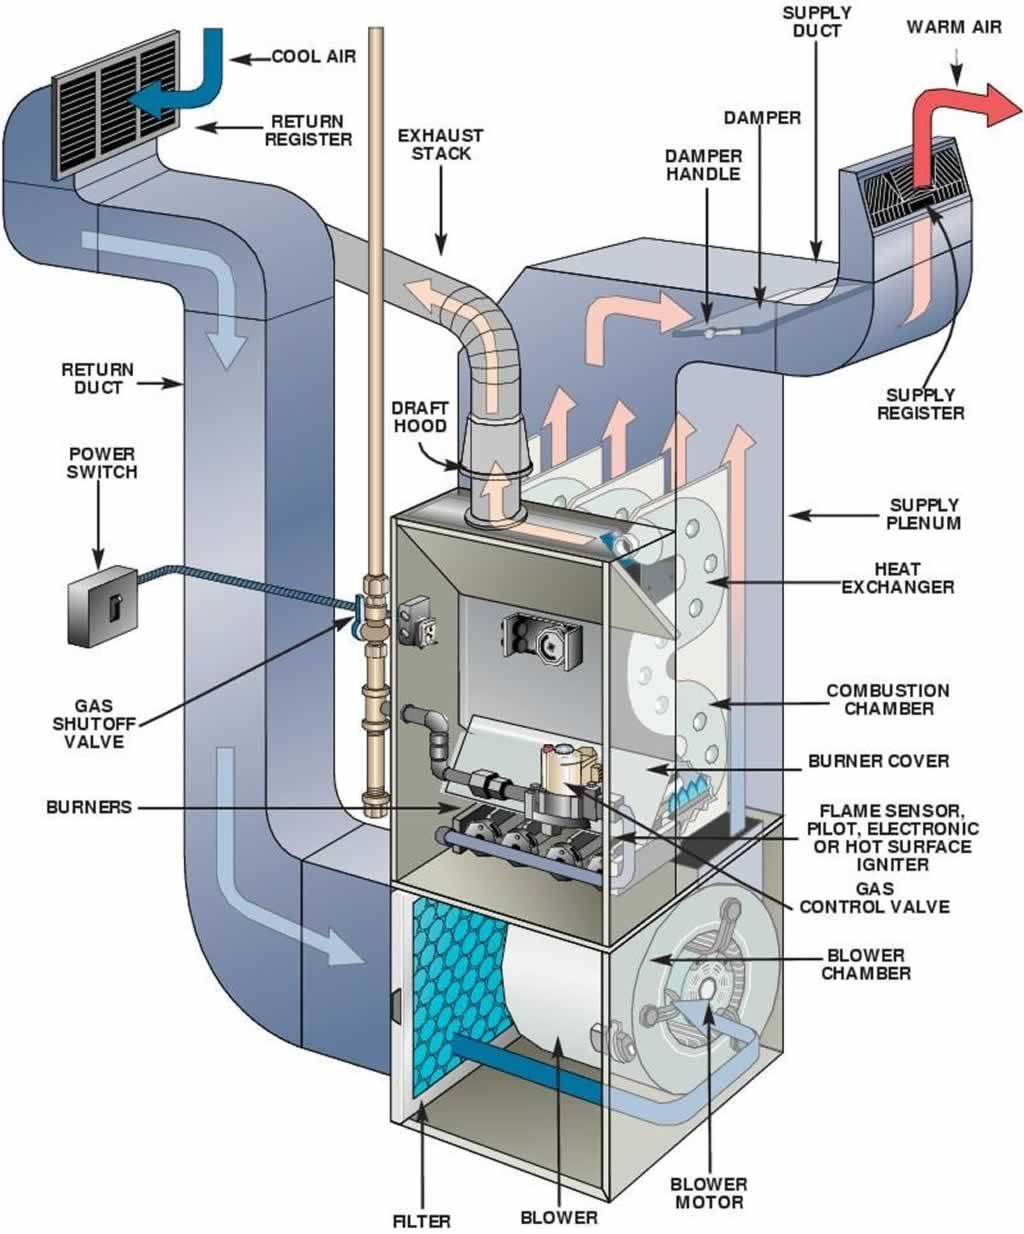 hight resolution of 5 ultimate facts you need to know about furnaces furnace diagram